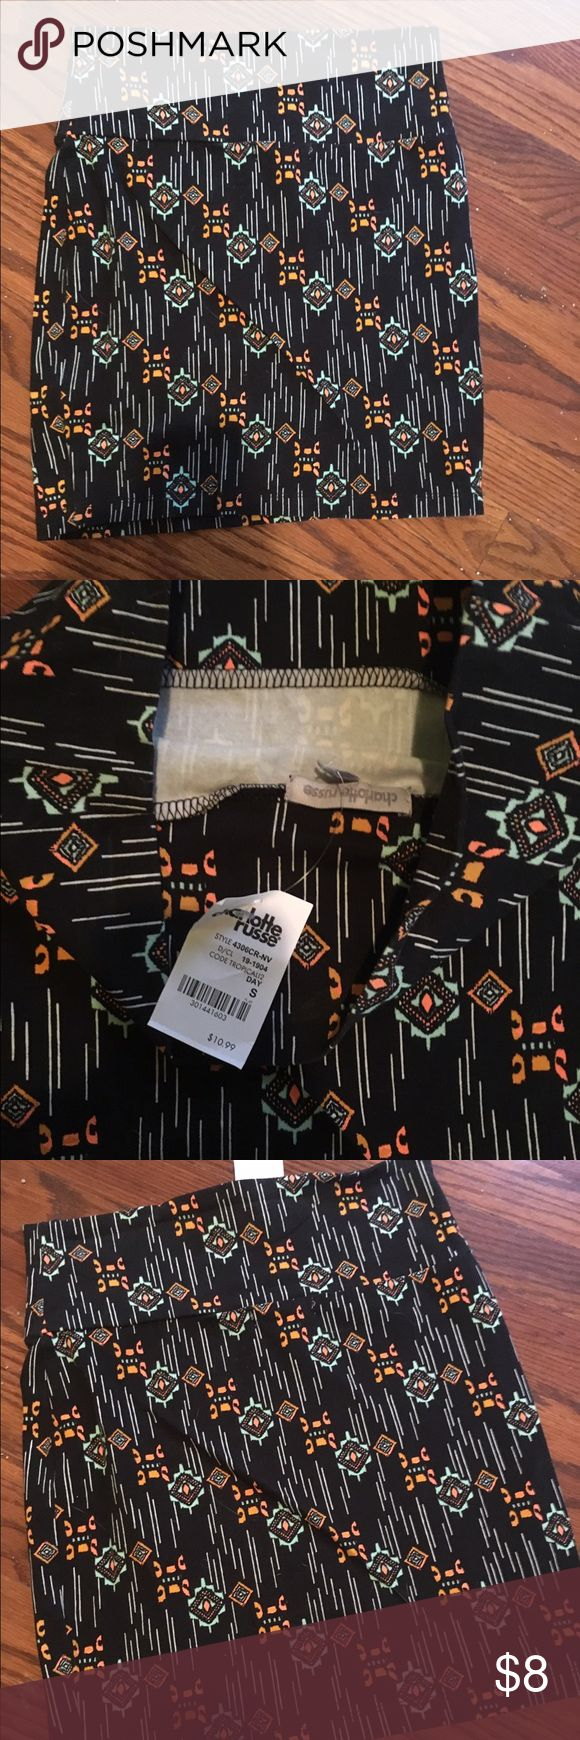 NWT Aztec print skirt Mini skirt in Aztec print. Great for summer or tropical vacation. Never worn. Charlotte Russe Skirts Mini